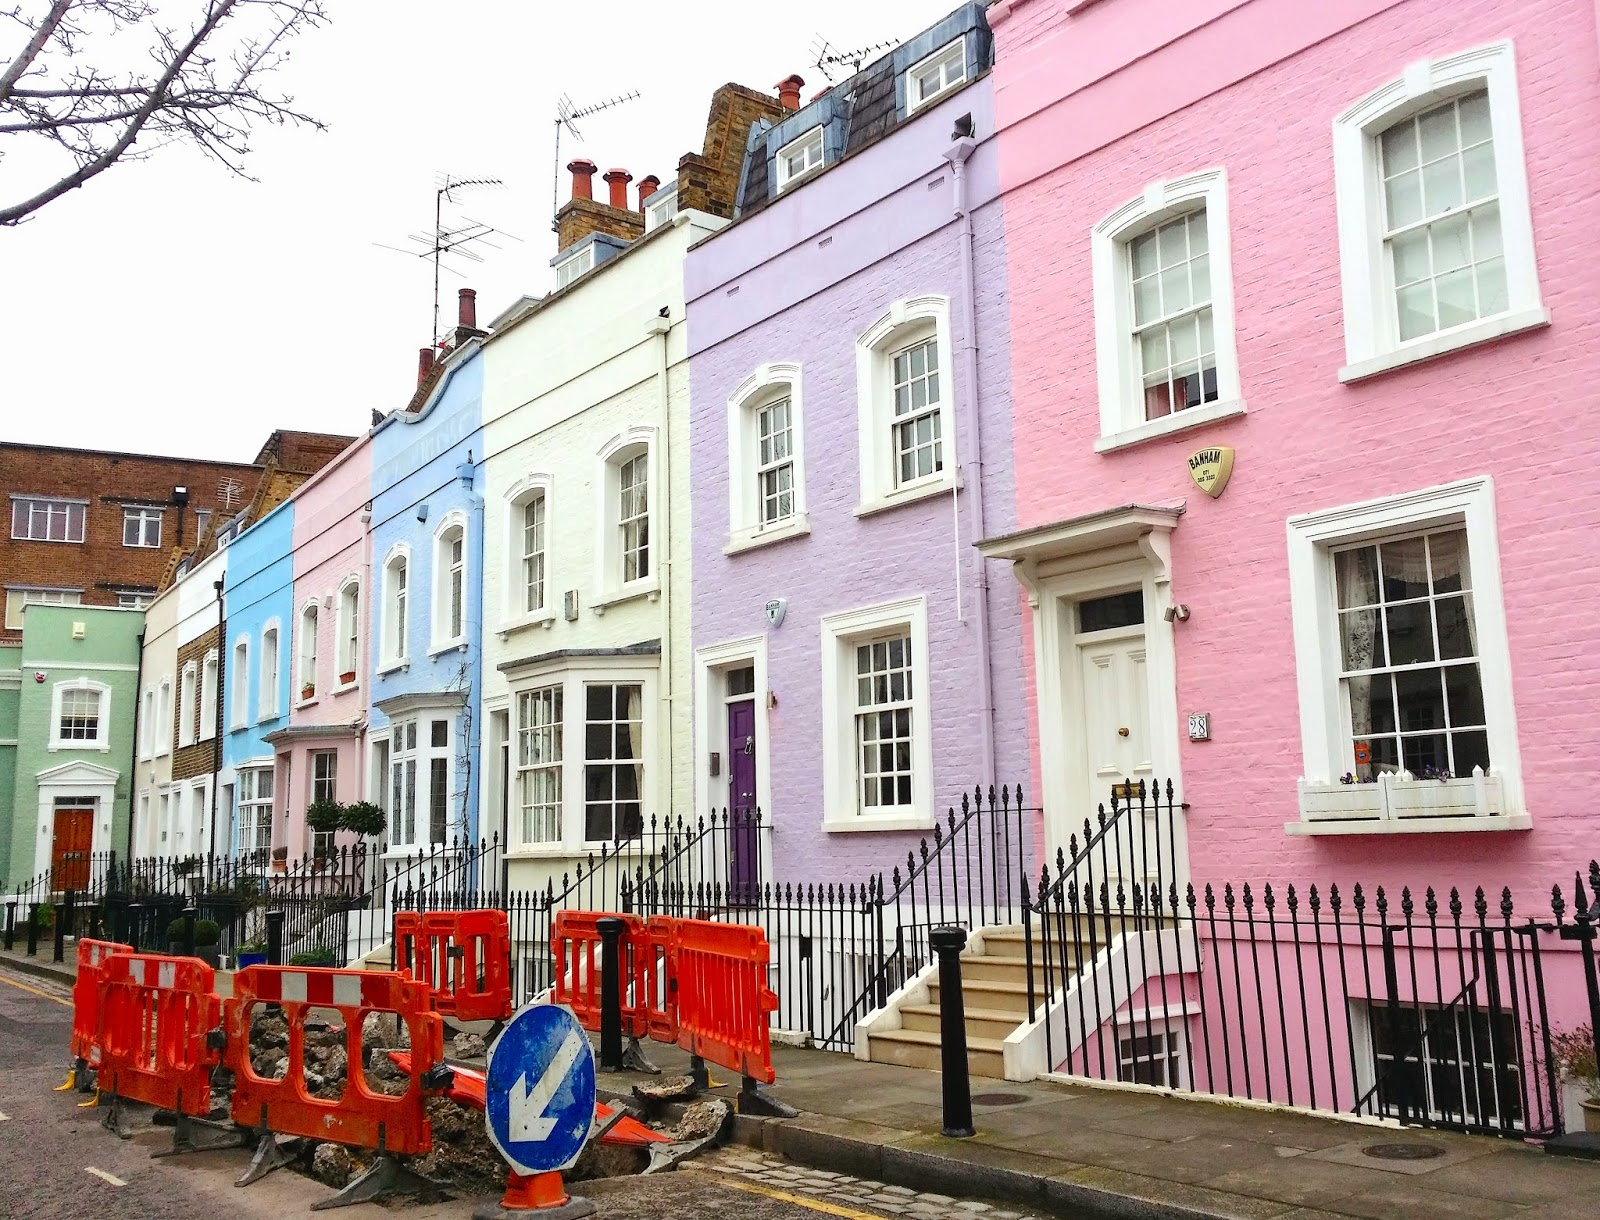 Violet and pink houses